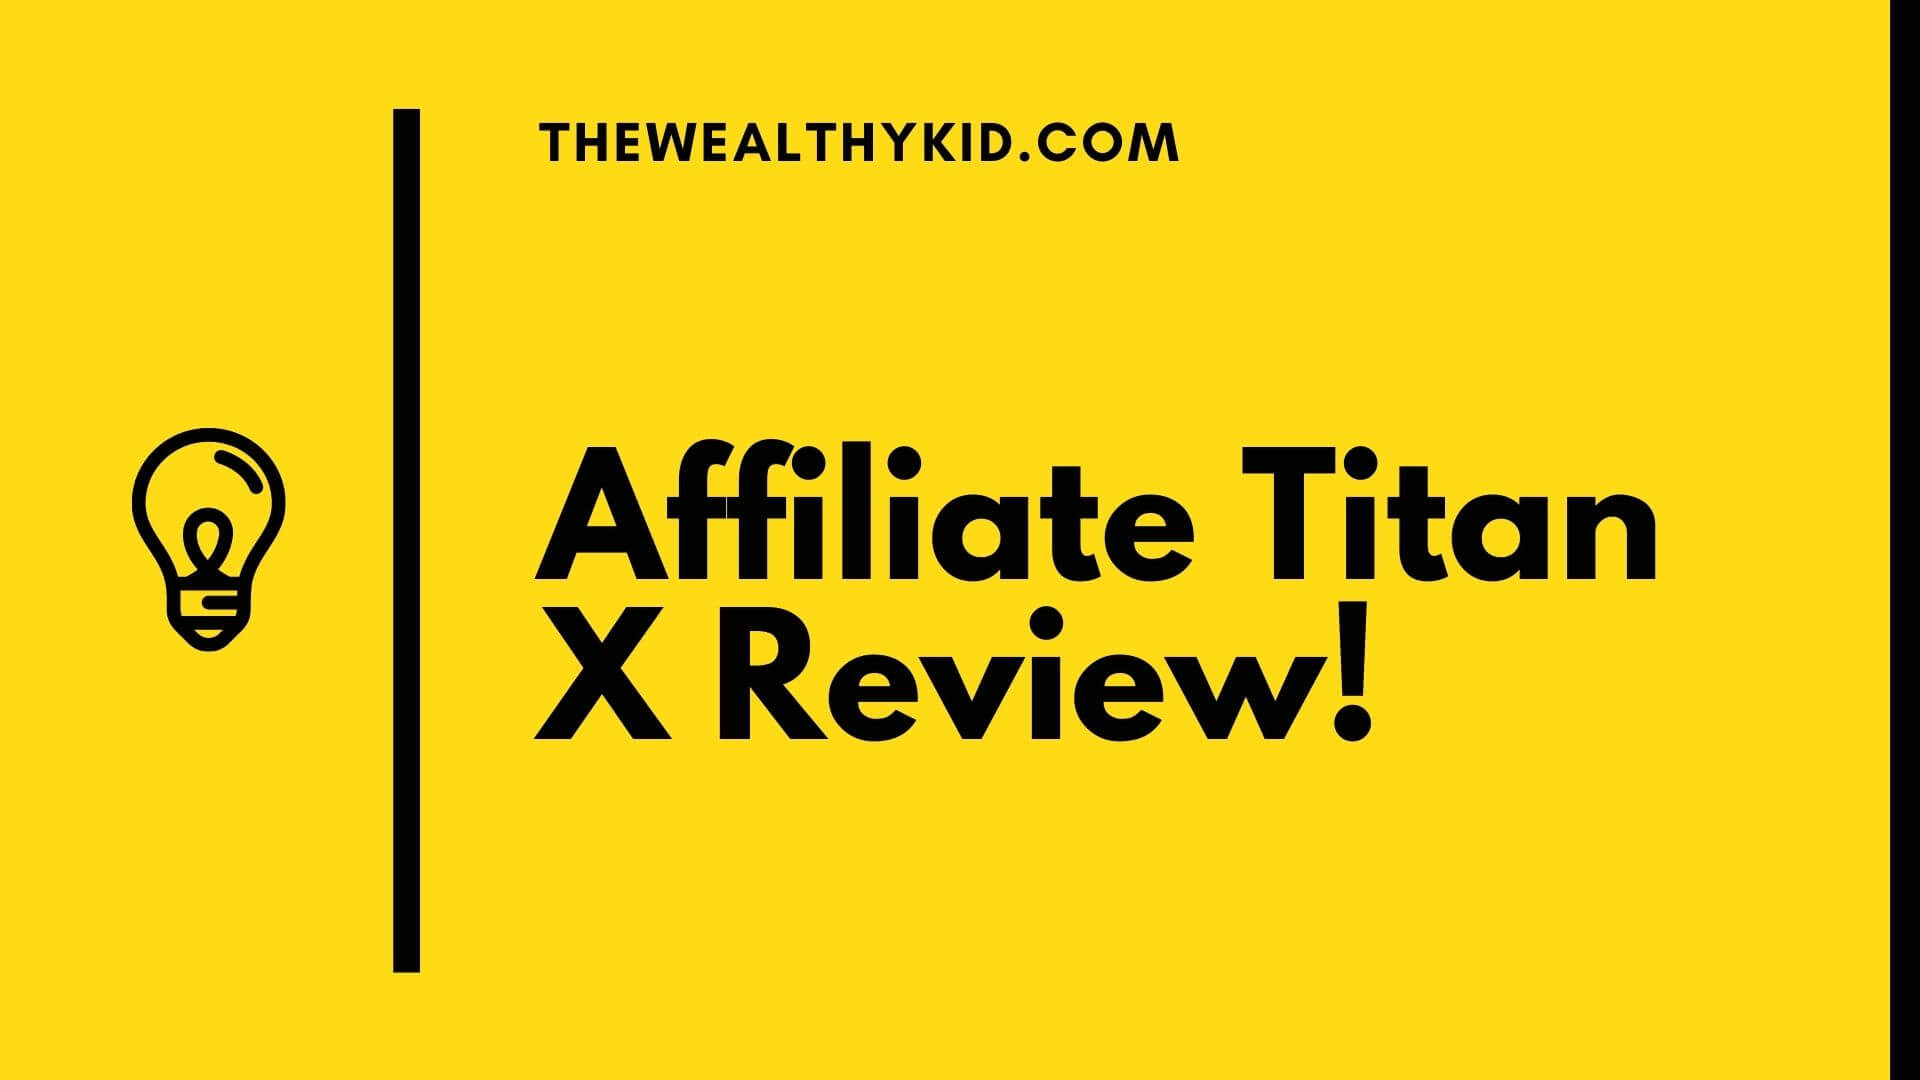 What is Affiliate Titan X